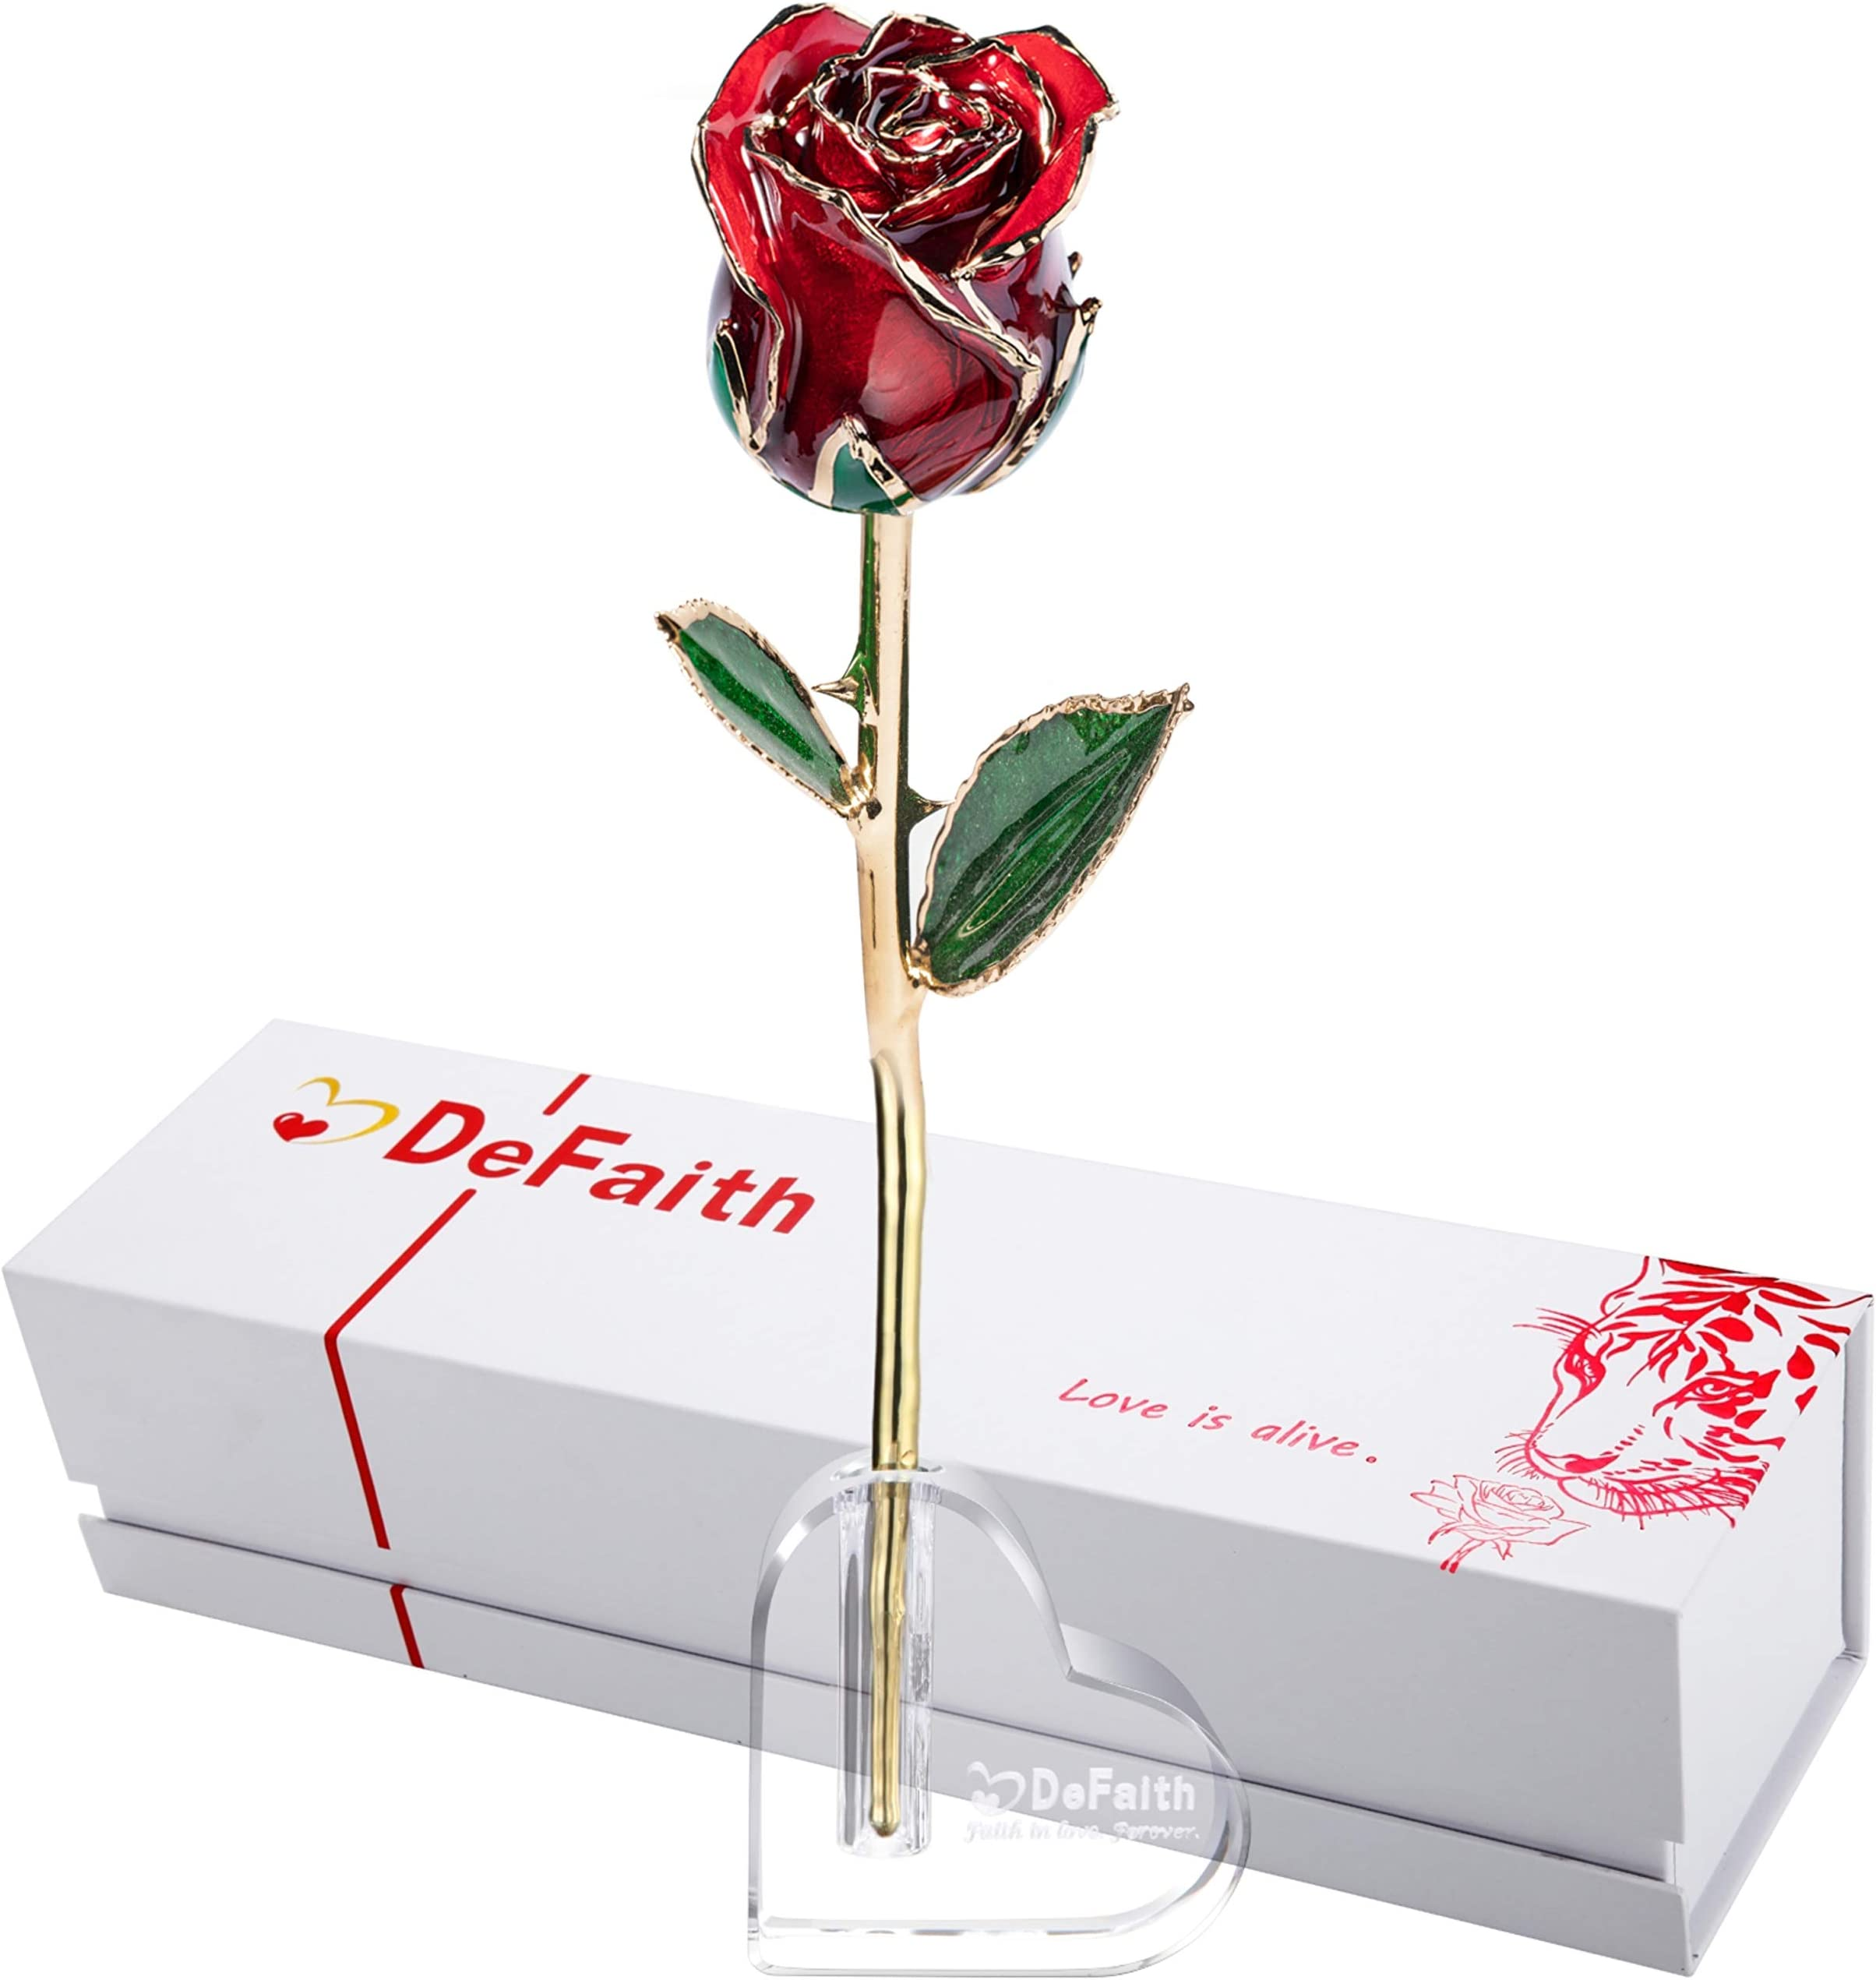 A Dozen Real Roses Long Stemmed Rose Bouquet in box 24K Real Roses You choose color Simply Beautiful !